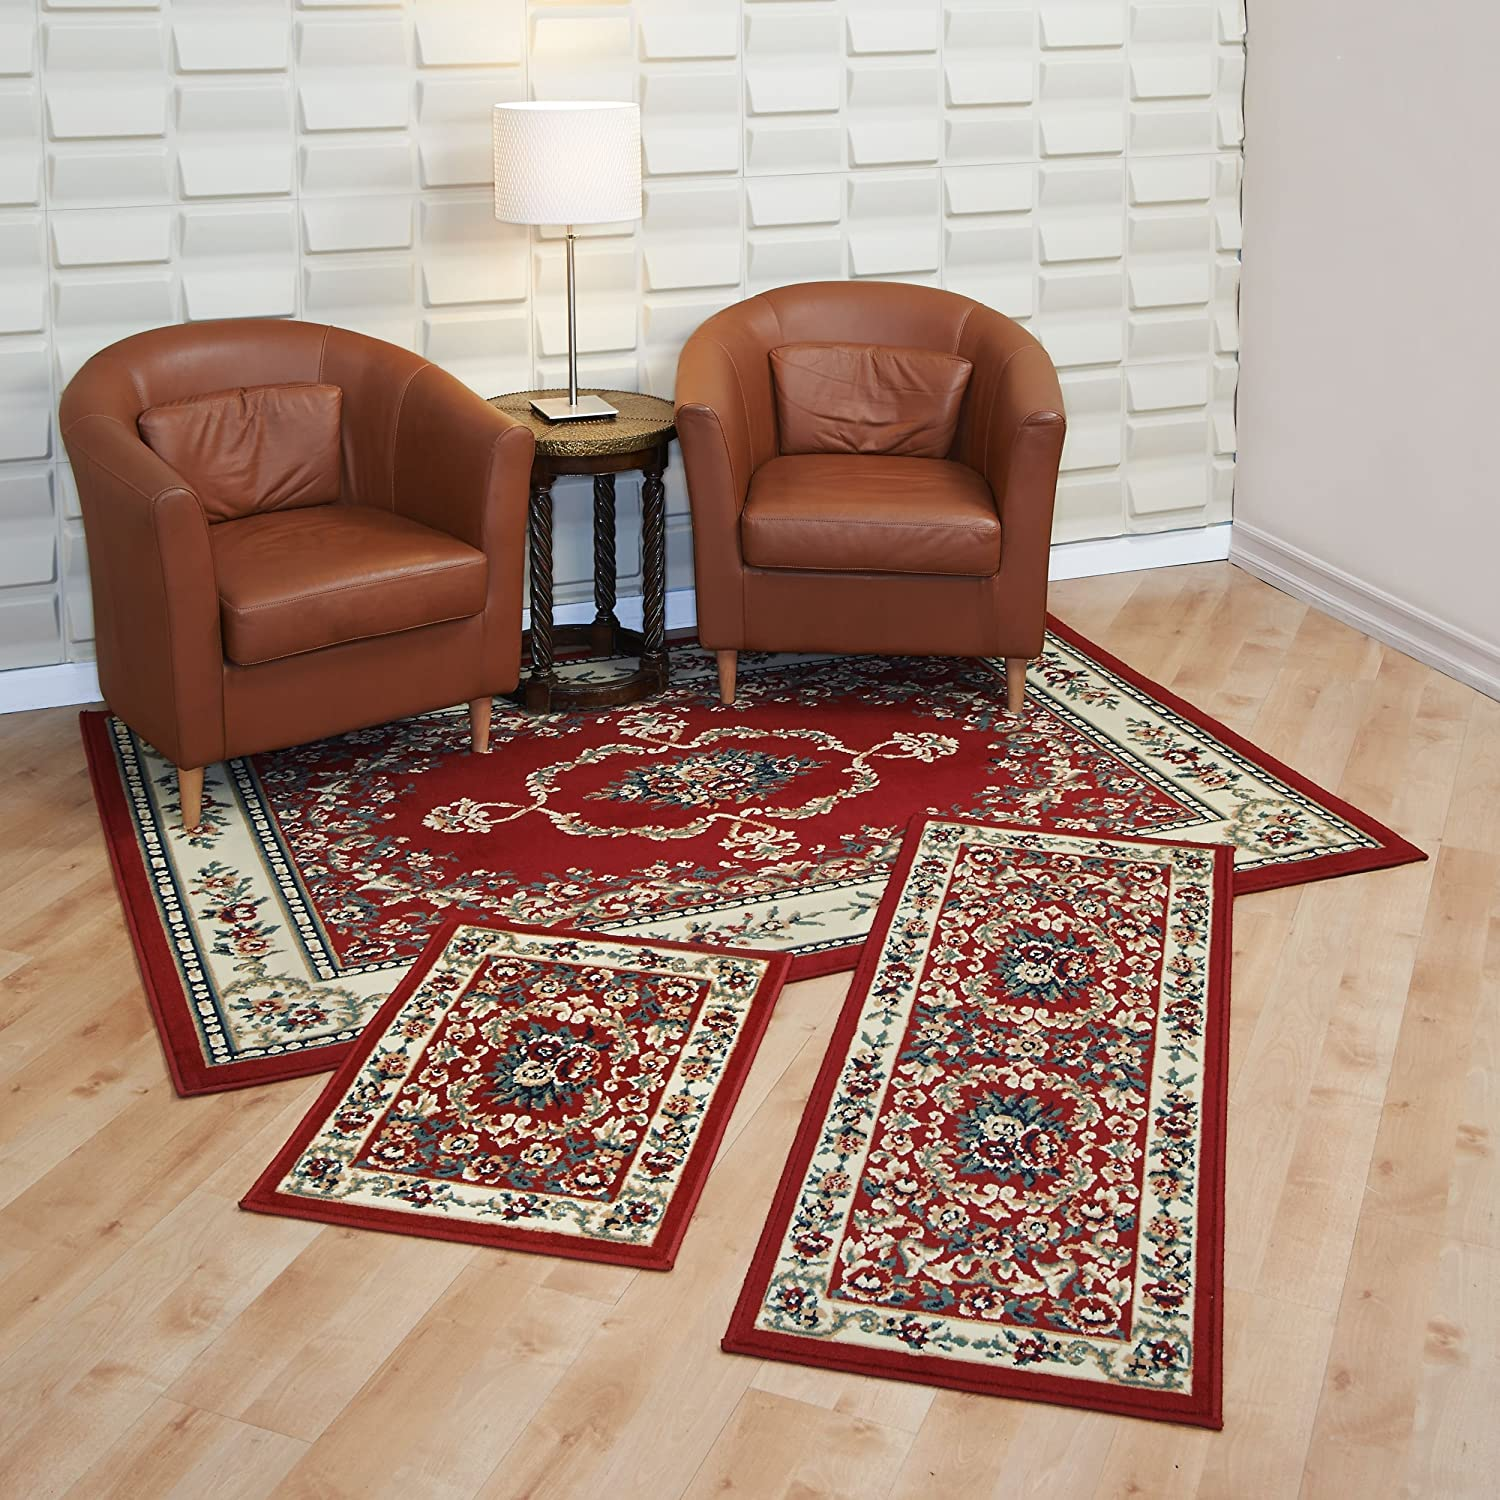 Charmant Amazon.com: Maya Collection 3 Pc Area Rug Set Size: 5u0027x7u0027 Rug, 22u201dx59u201d  Runner, 22u201dx31u201d Mat   Royal Crown Navy: Kitchen U0026 Dining